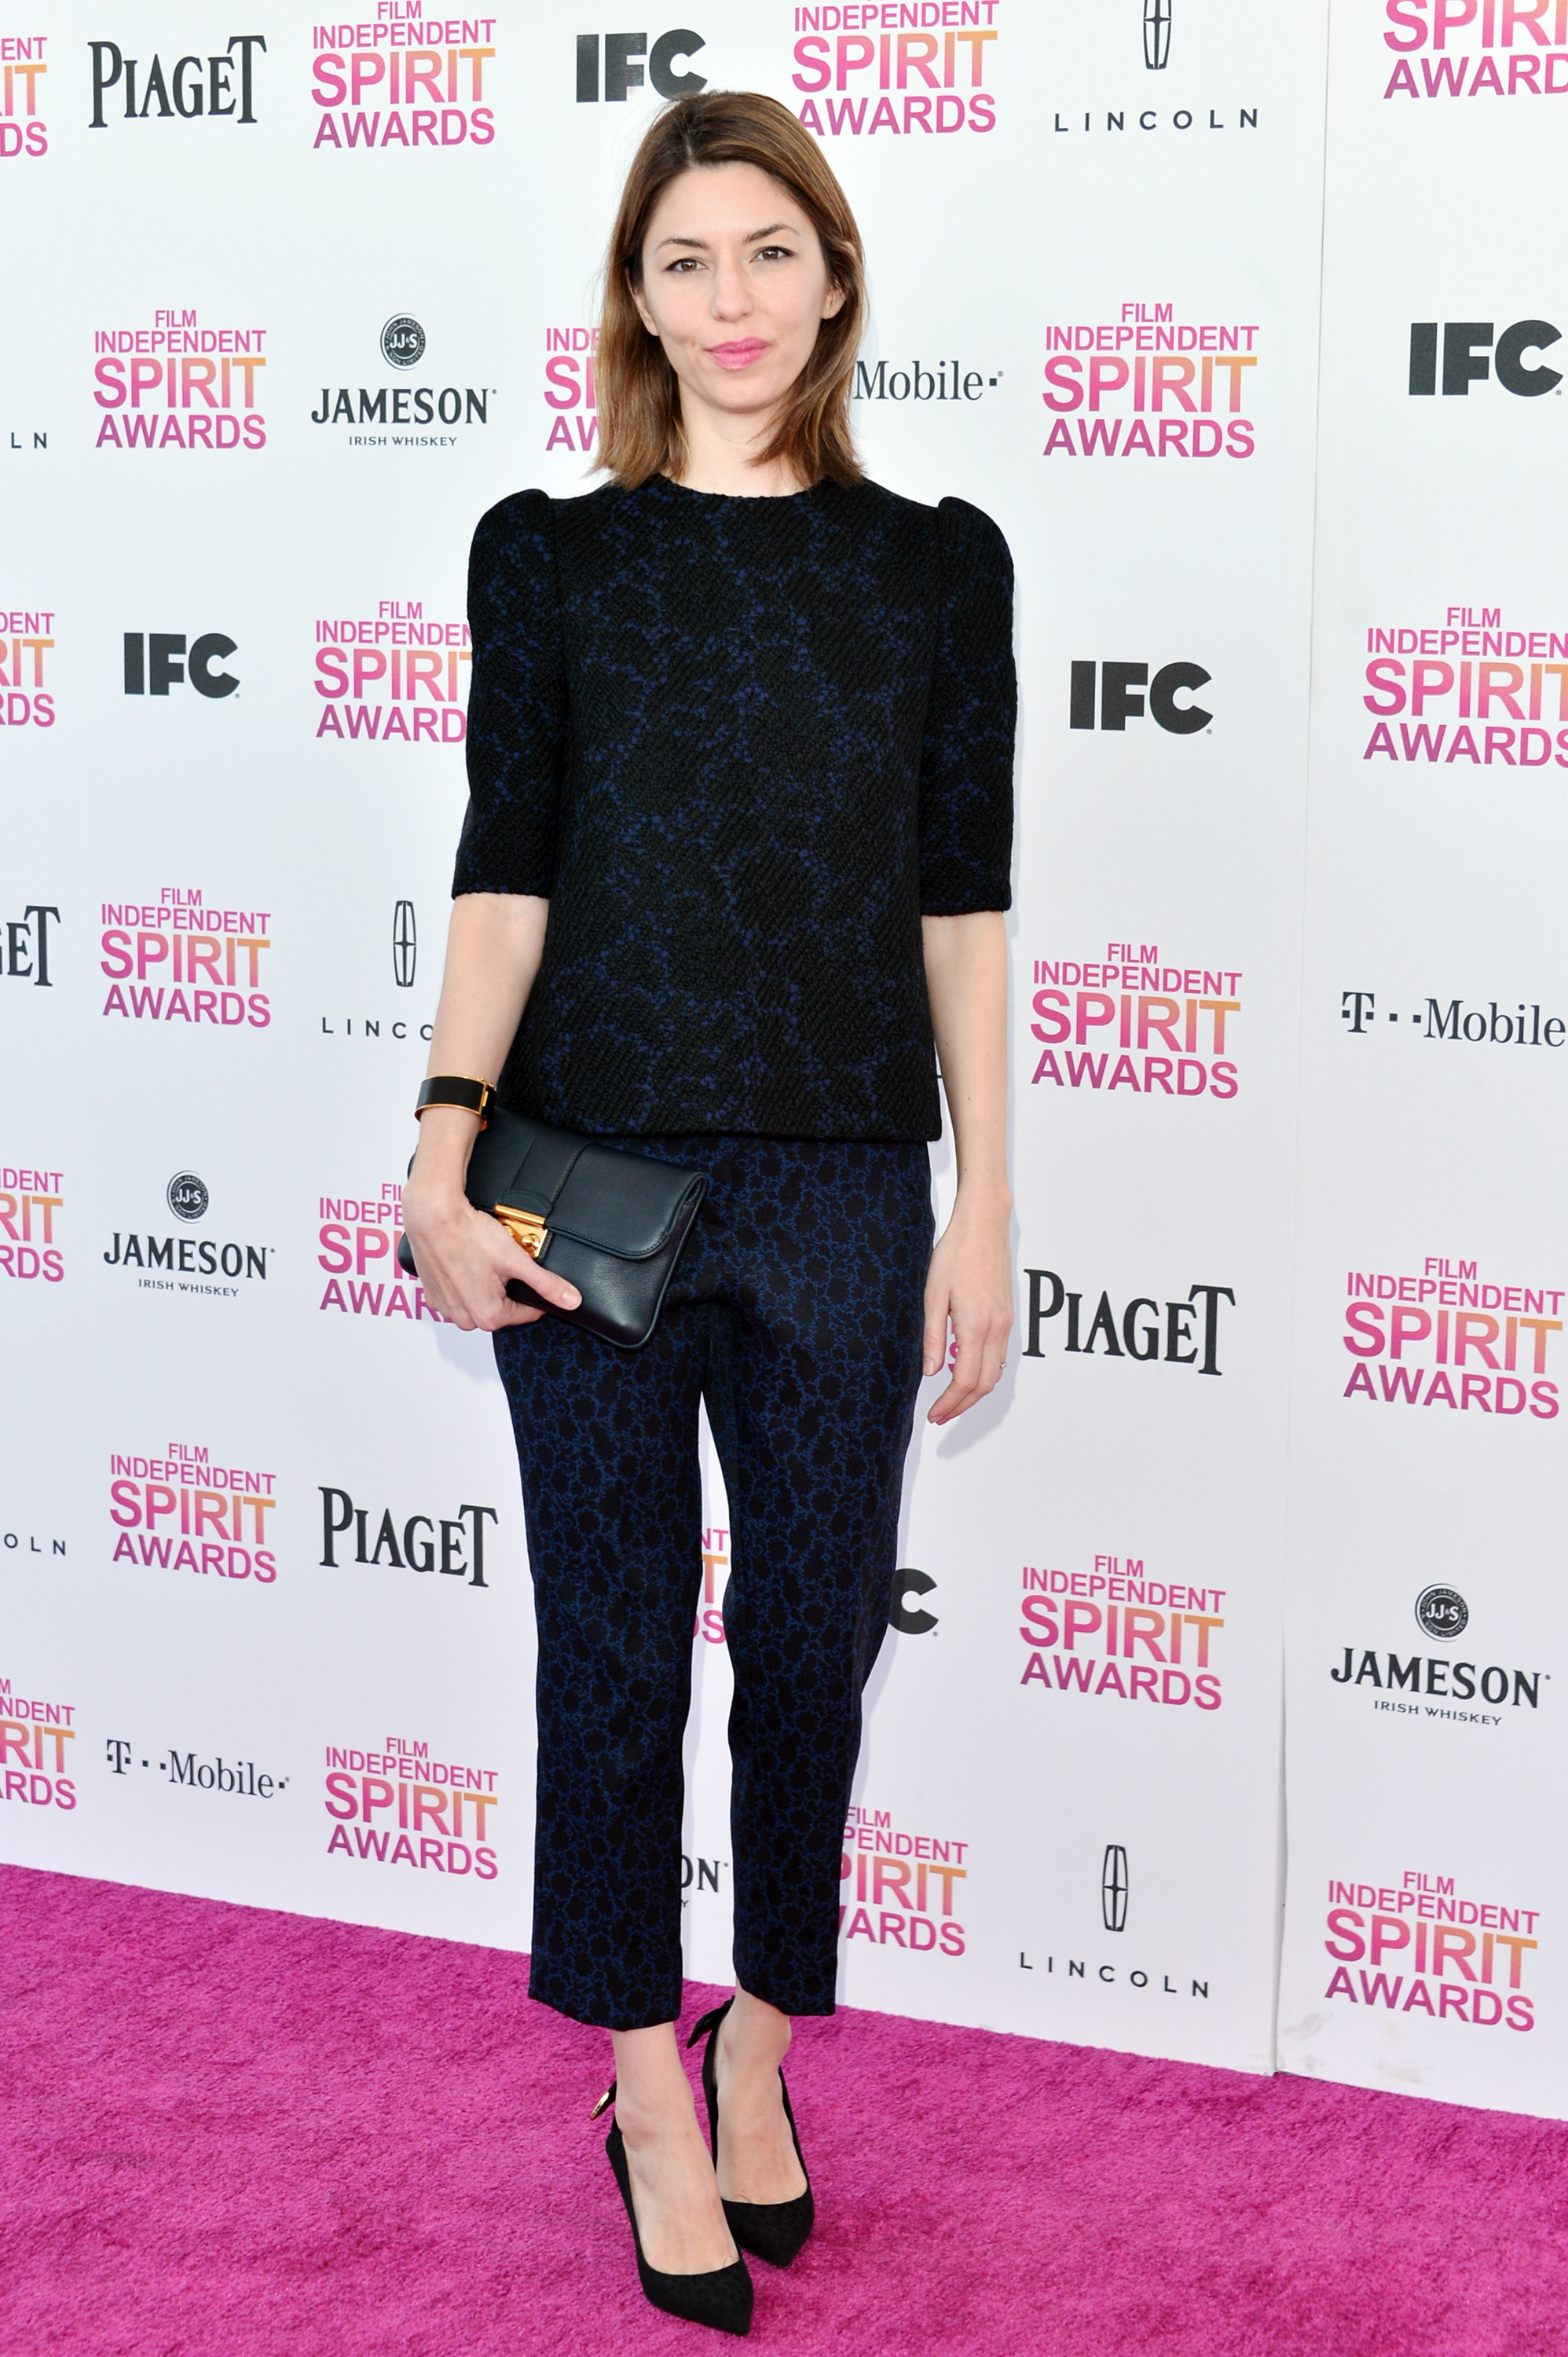 Sofia Coppola on the red carpet at the Spirit Awards 2013.